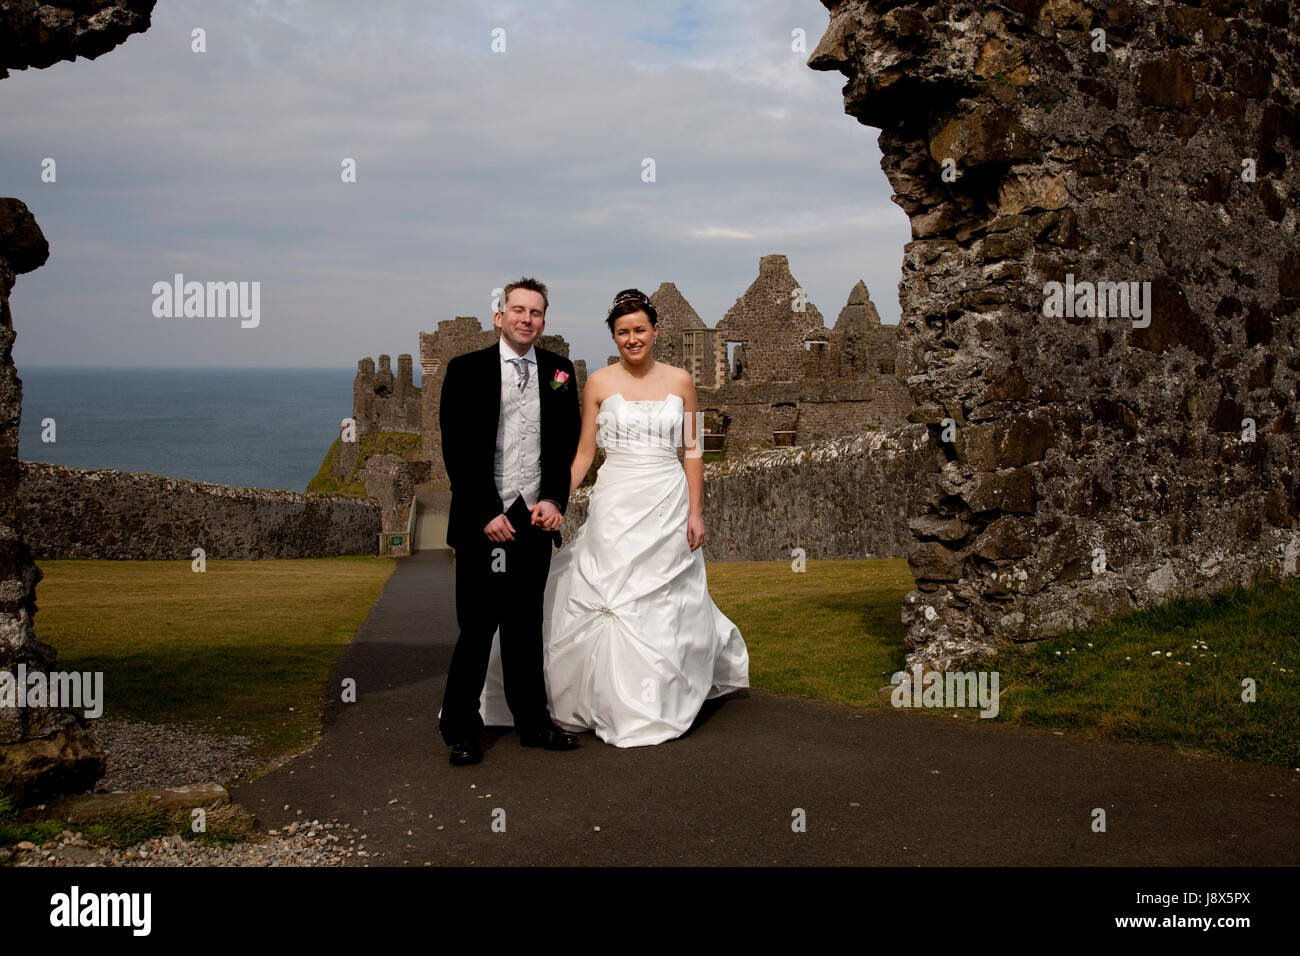 Wedding photograph at Dunluce Castle, N Ireland - Stock Image